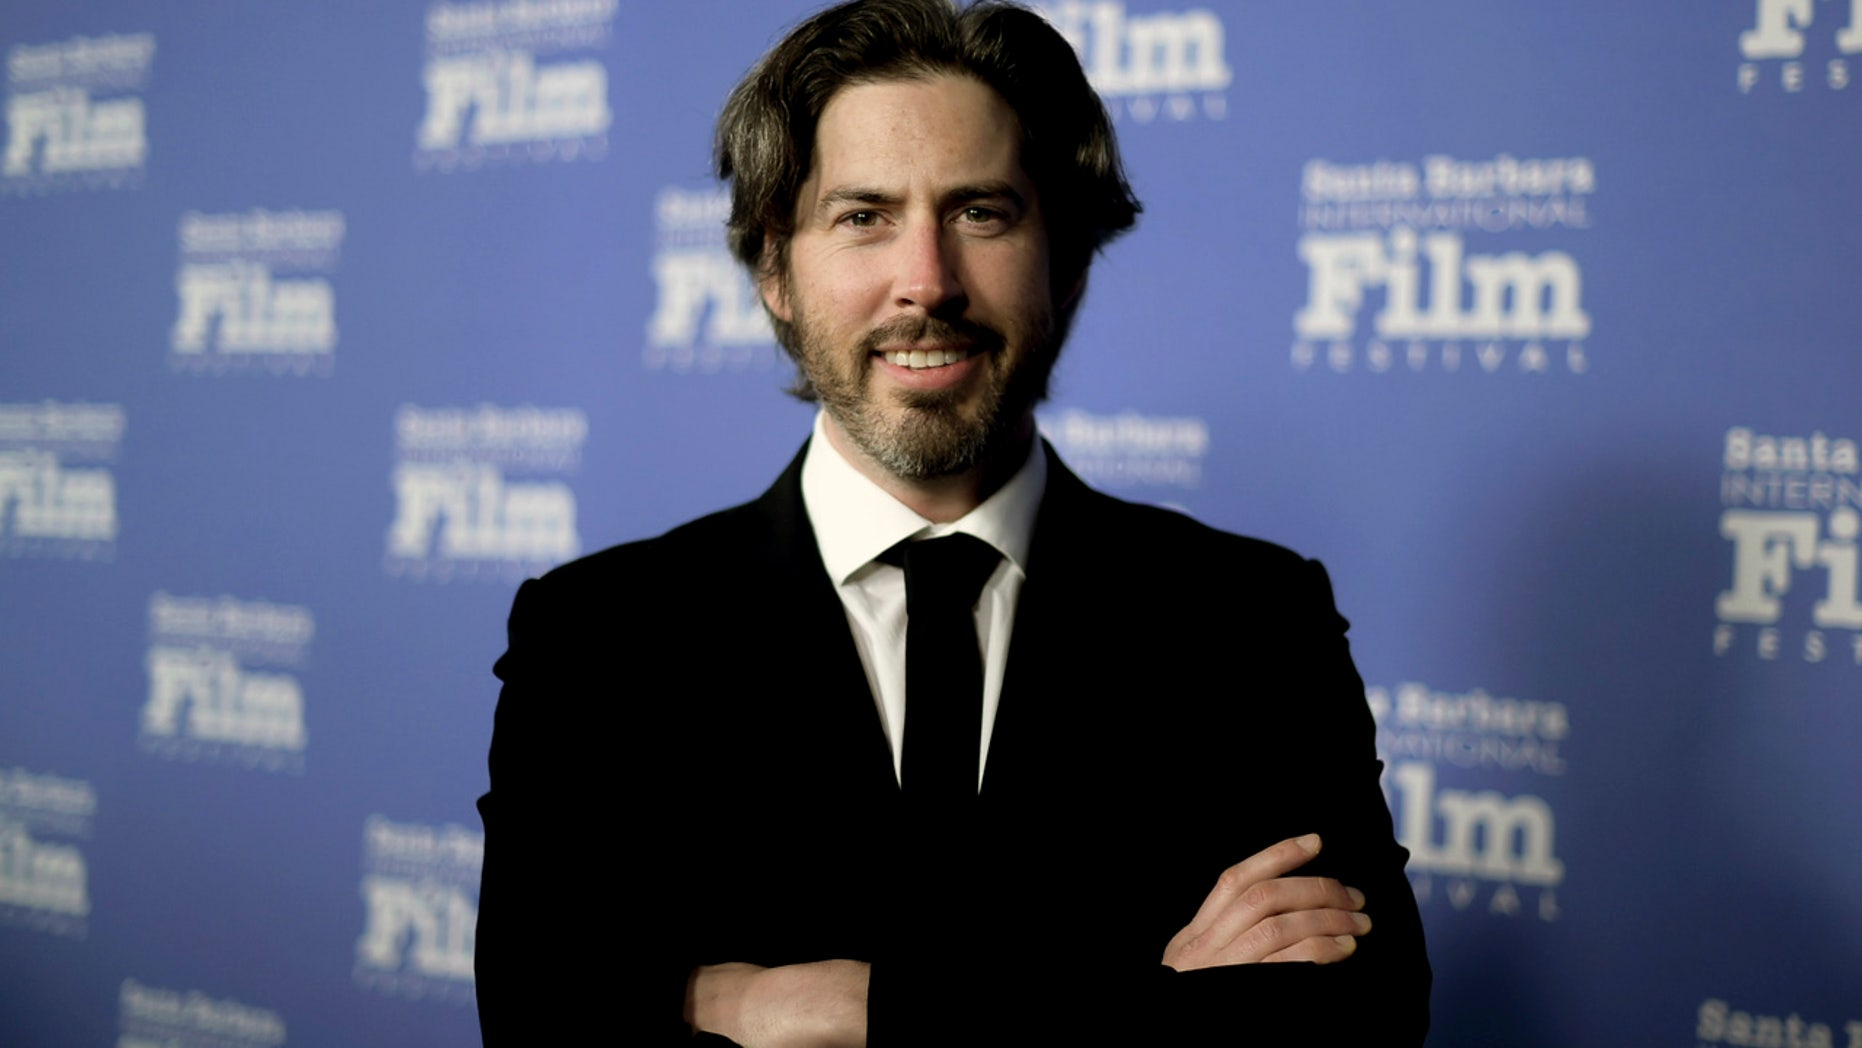 FILE - In this Monday, Nov. 19, 2018 file photo, Jason Reitman attends the 2018 Kirk Douglas Award for Excellence in Film Honoring Hugh Jackman at the Ritz-Carlton Bacara in Goleta, Calif. (Photo by Richard Shotwell/Invision/AP, File)